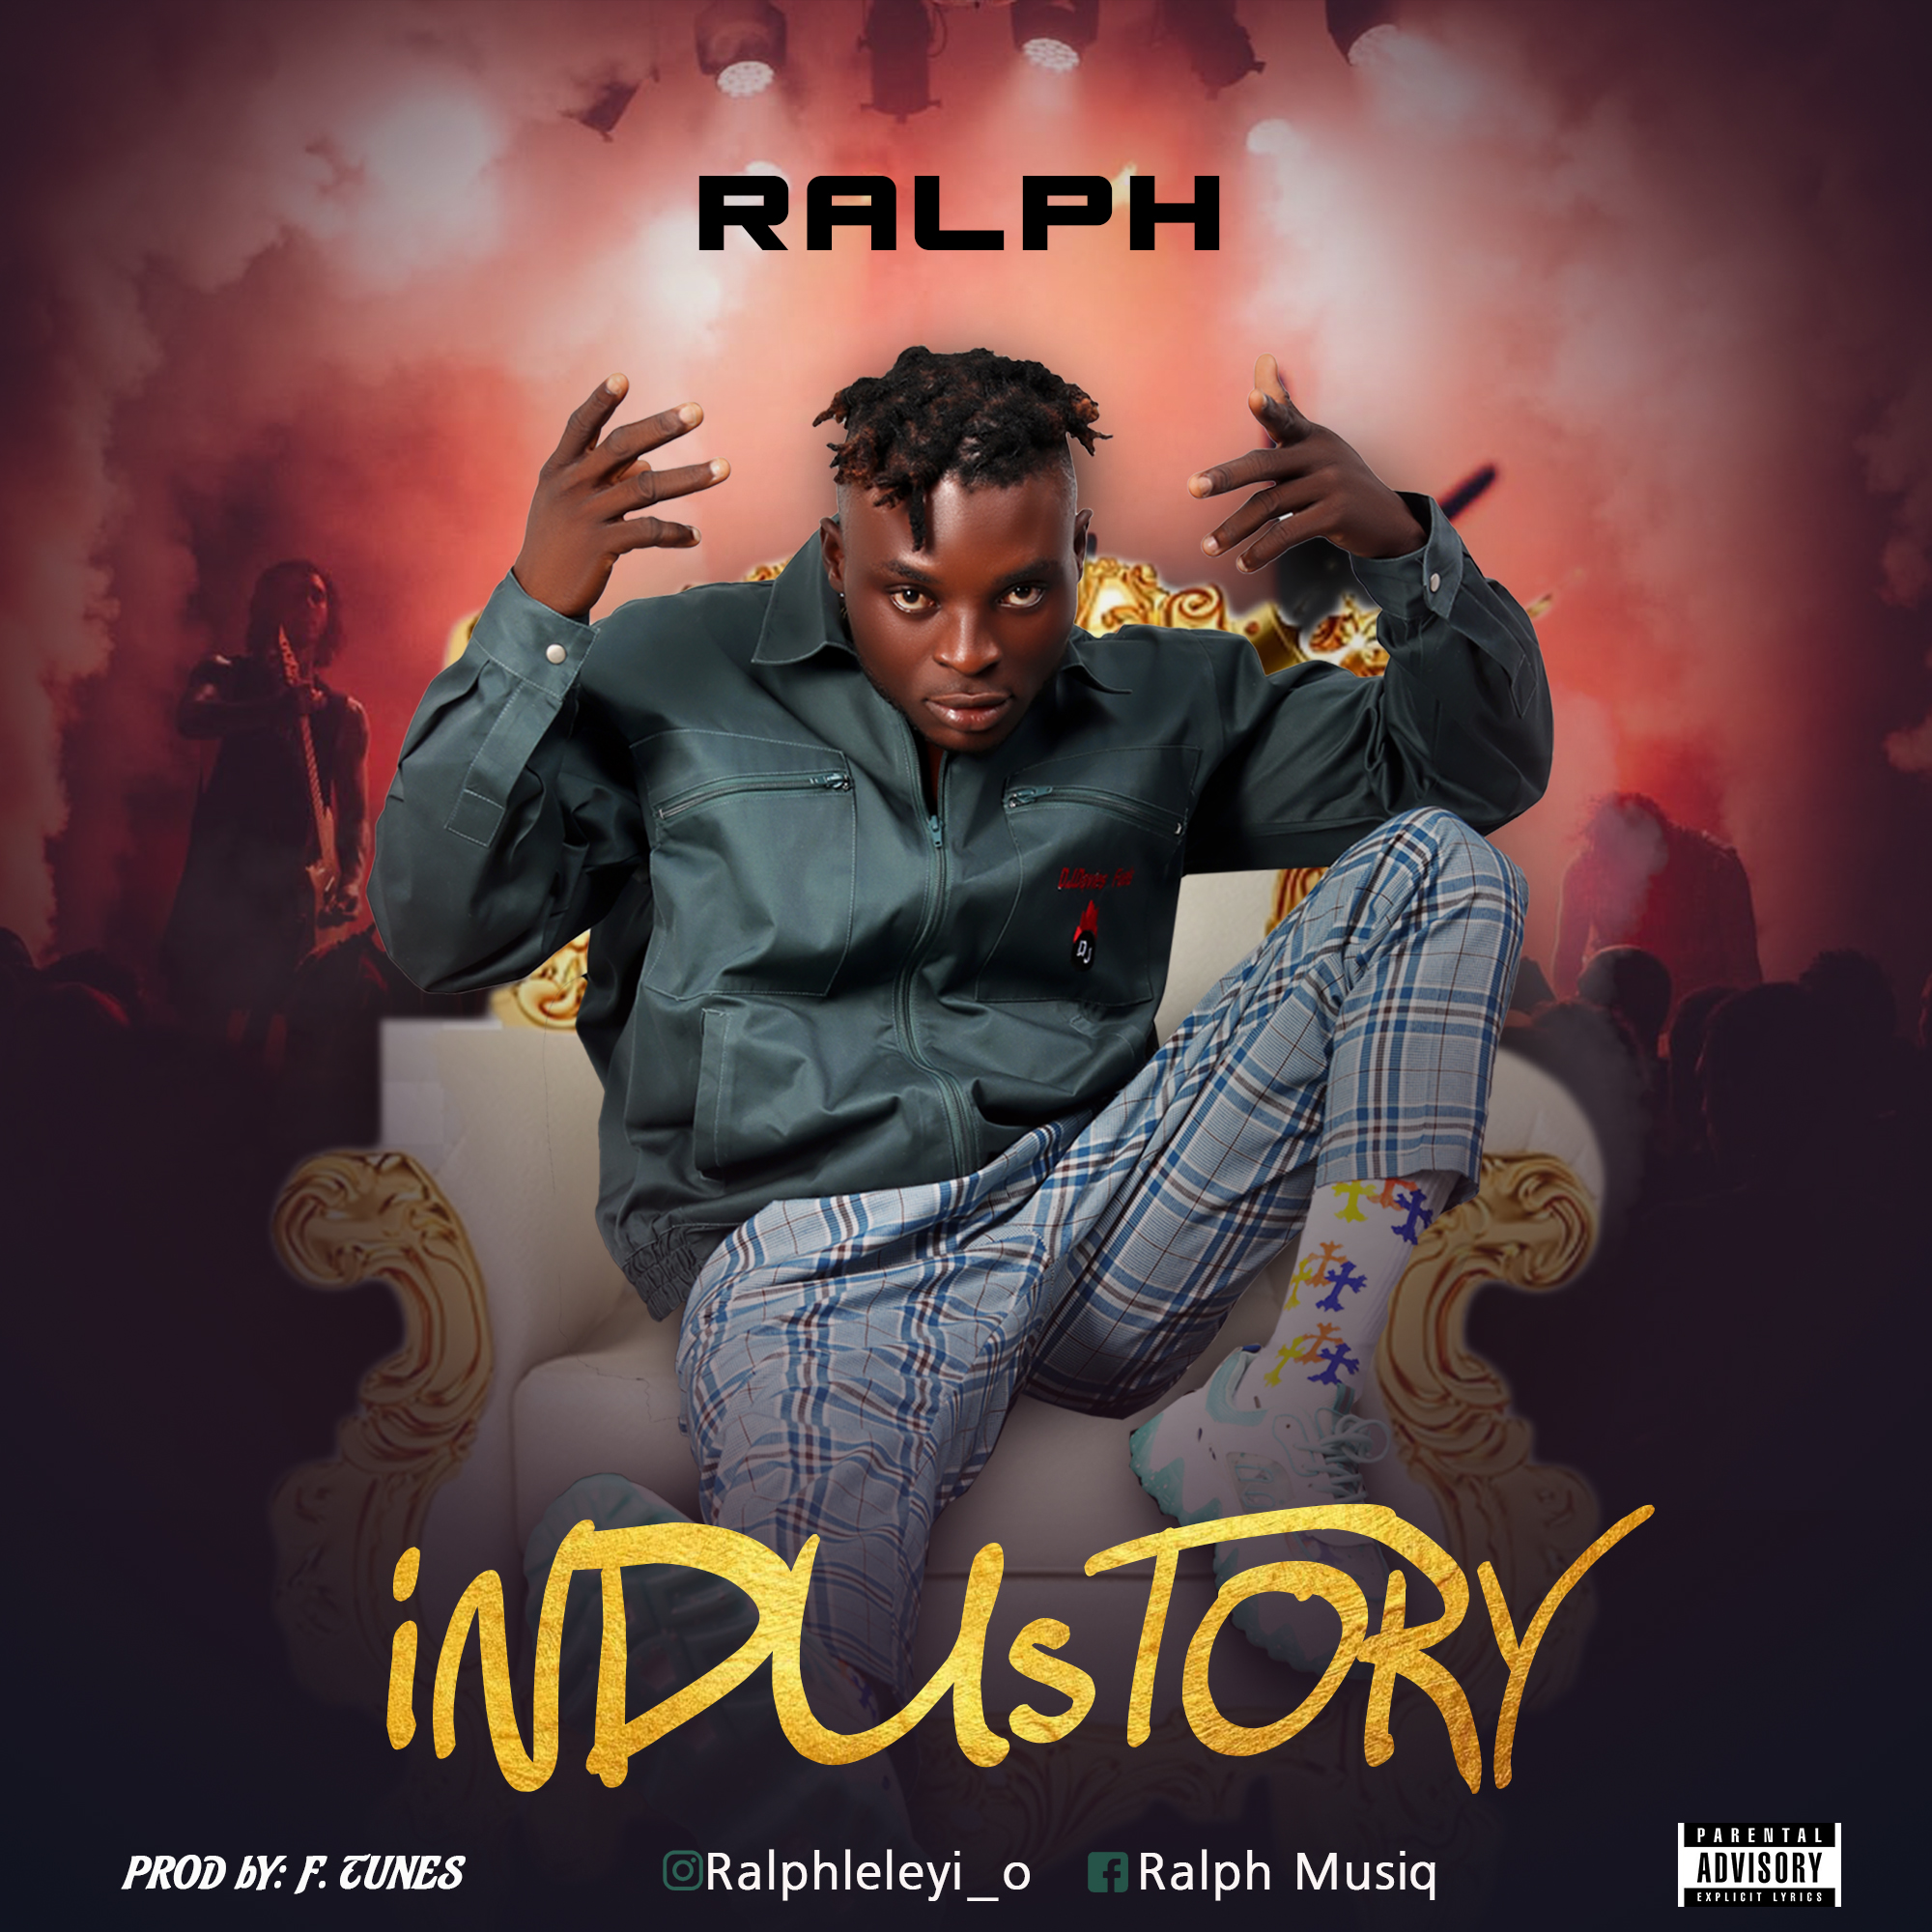 Ralph - Industory (Prod. By F.Tunes)